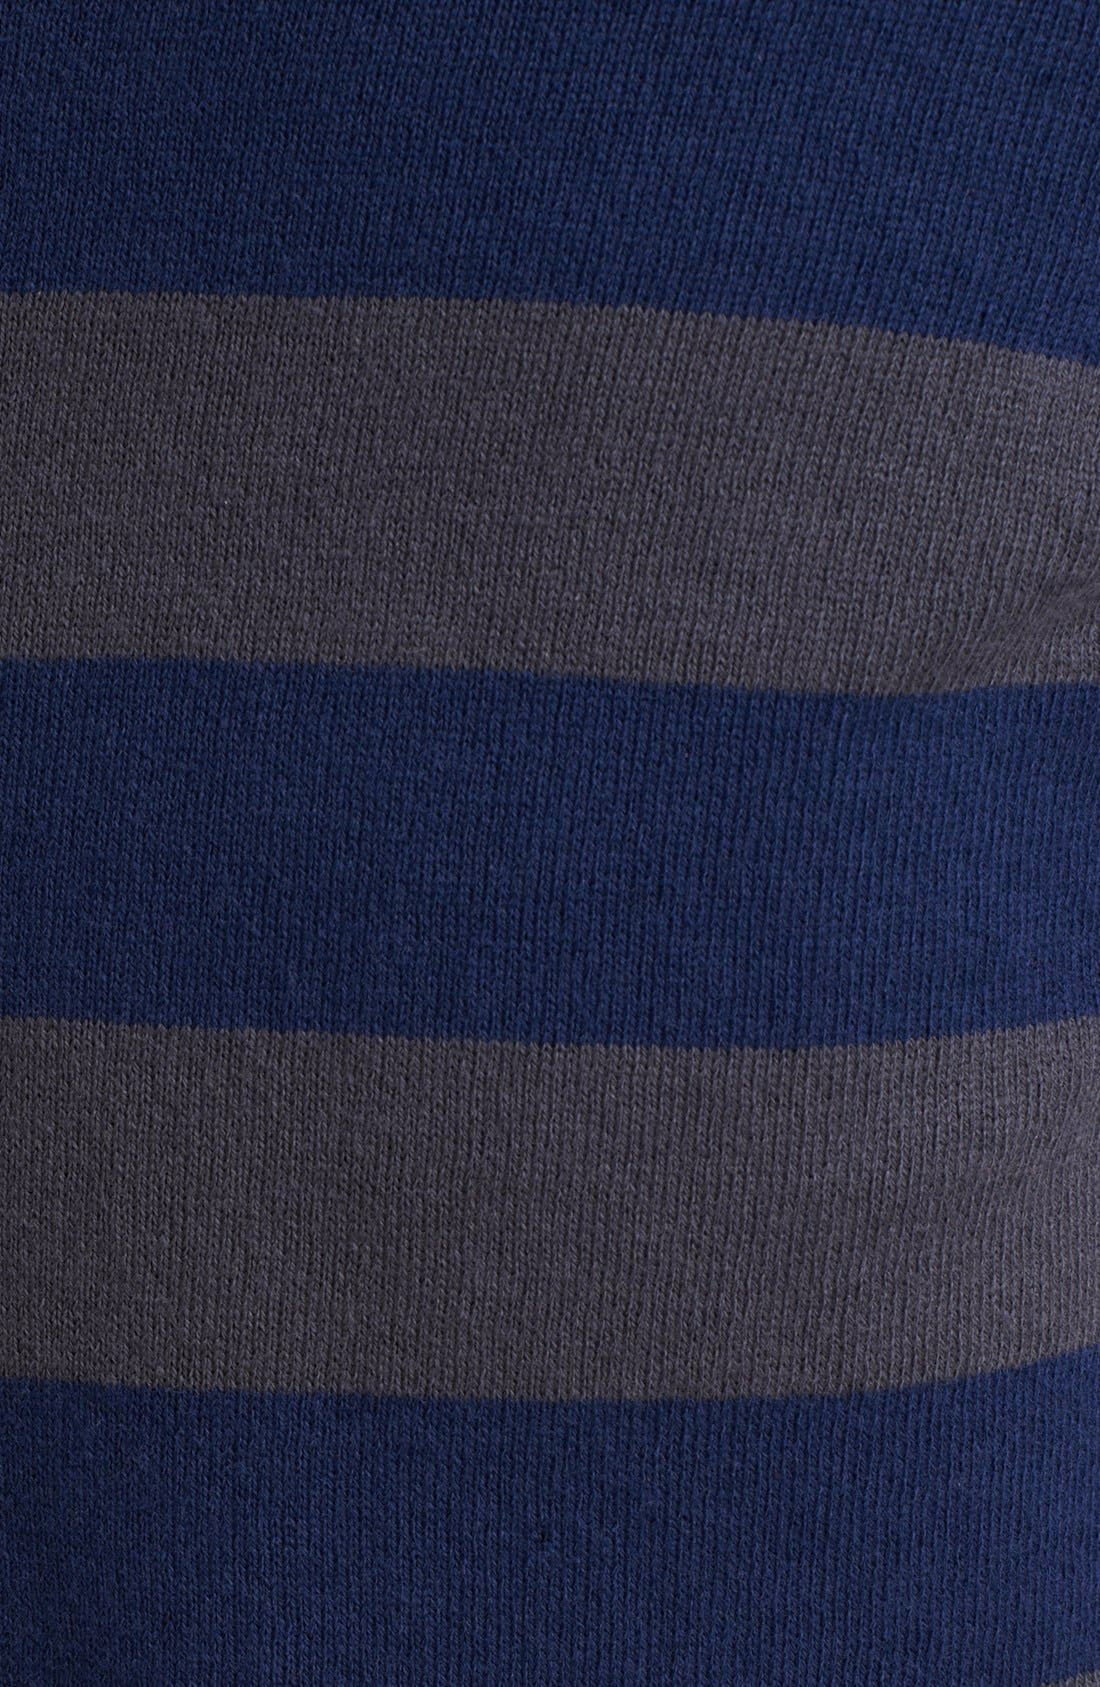 Alternate Image 3  - Junya Watanabe Stripe Jersey Cotton Long Sleeve T-Shirt